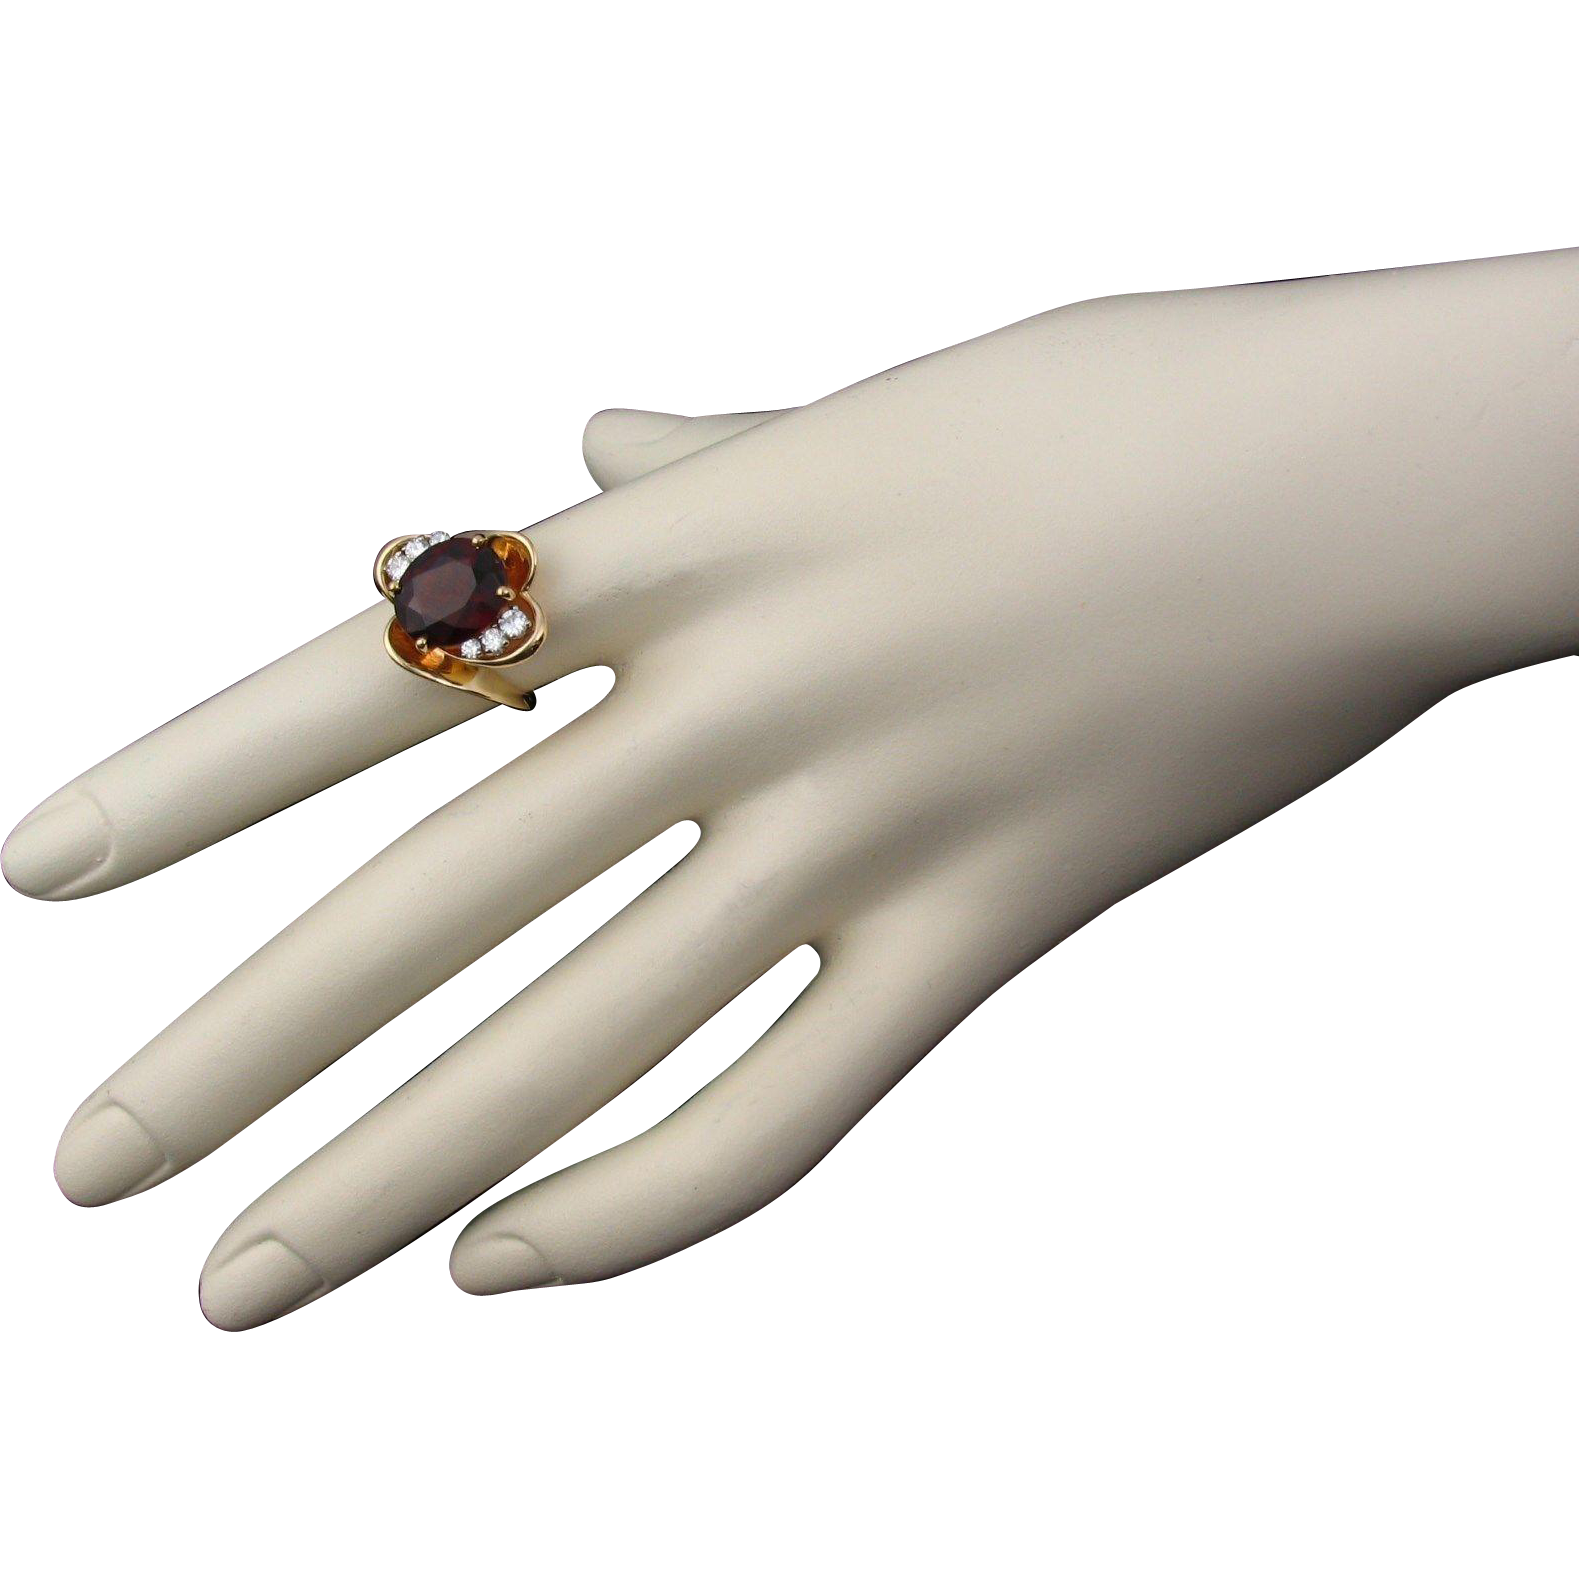 50% OFF 14k Herbert Rosenthal VVS Garnet Diamond Ring